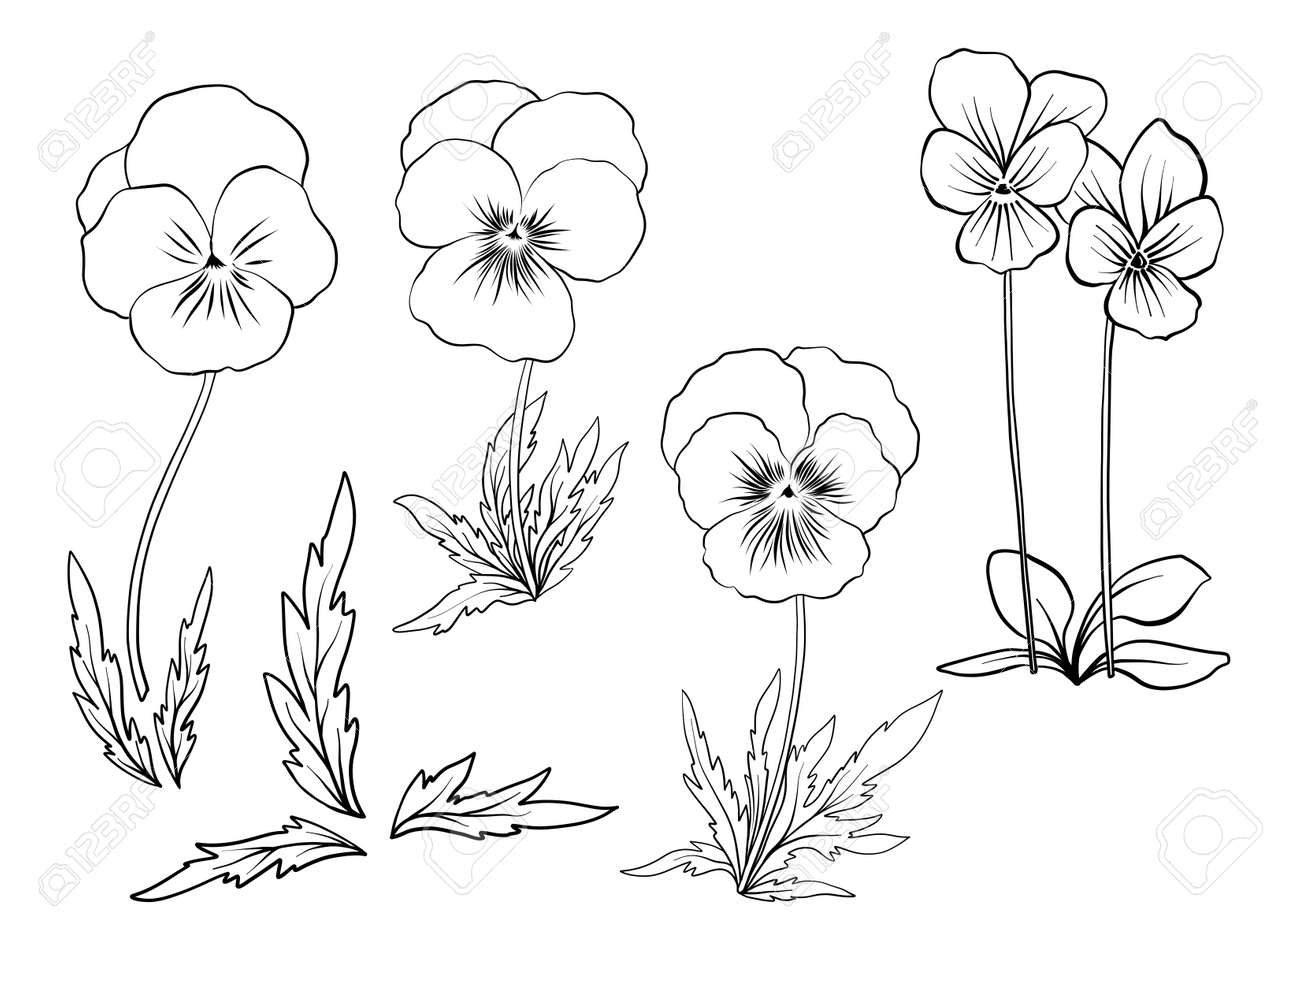 Violet Flowers Set Of Outline Flowers Royalty Free Cliparts Vectors And Stock Illustration Image 80628281